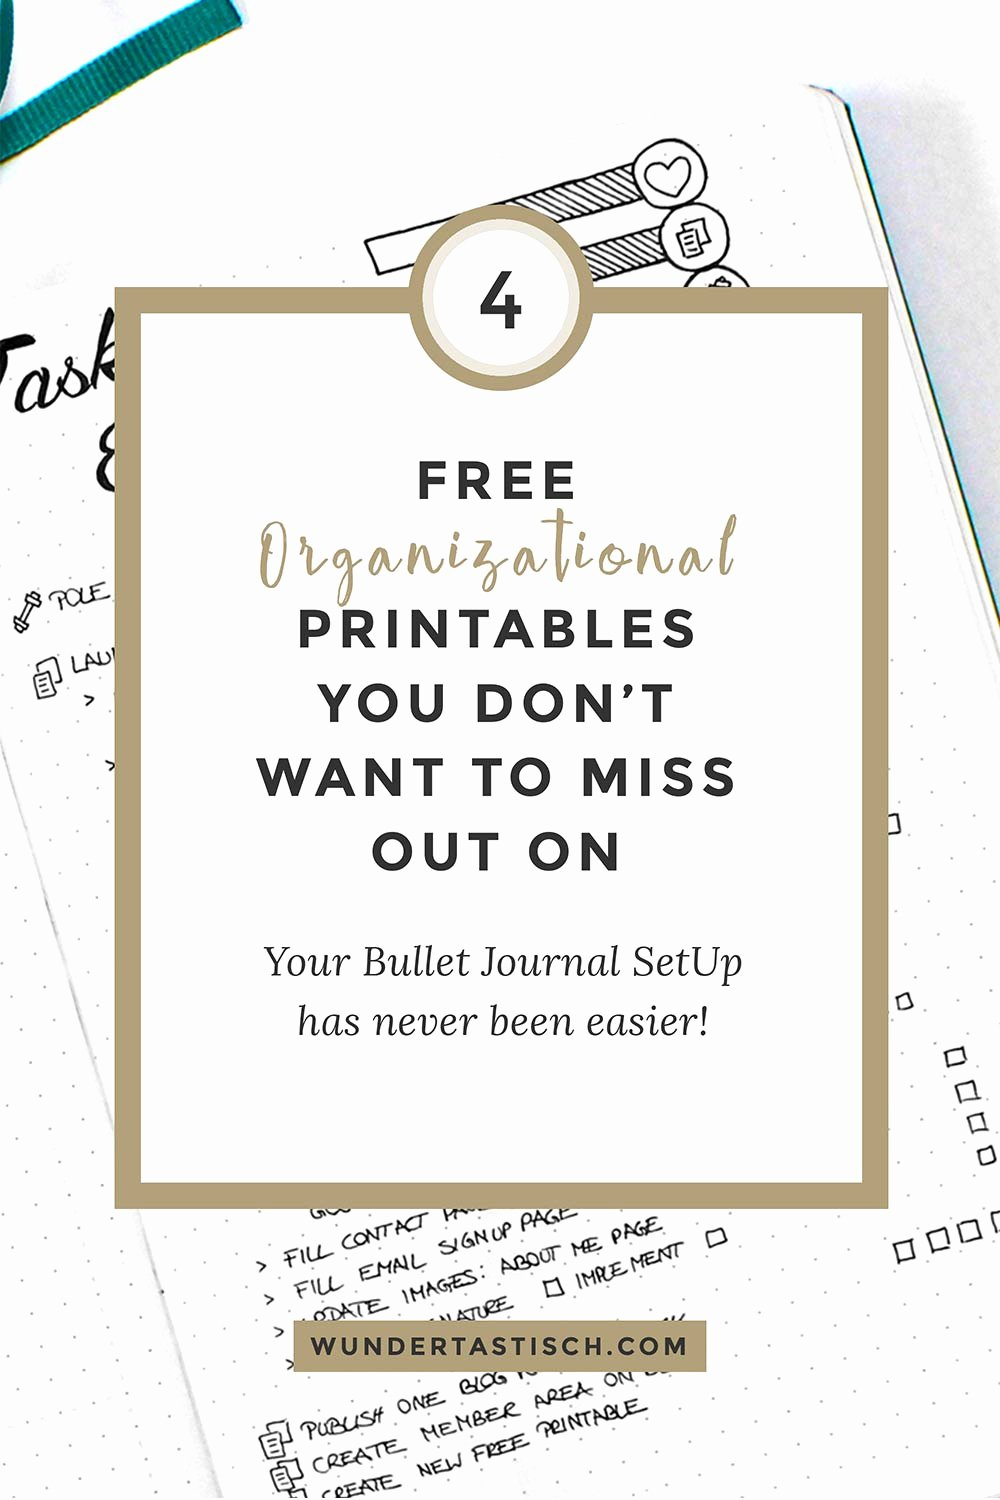 Bullet Journal Excel Template Inspirational Free organizational Printables You Don T Want to Miss Out